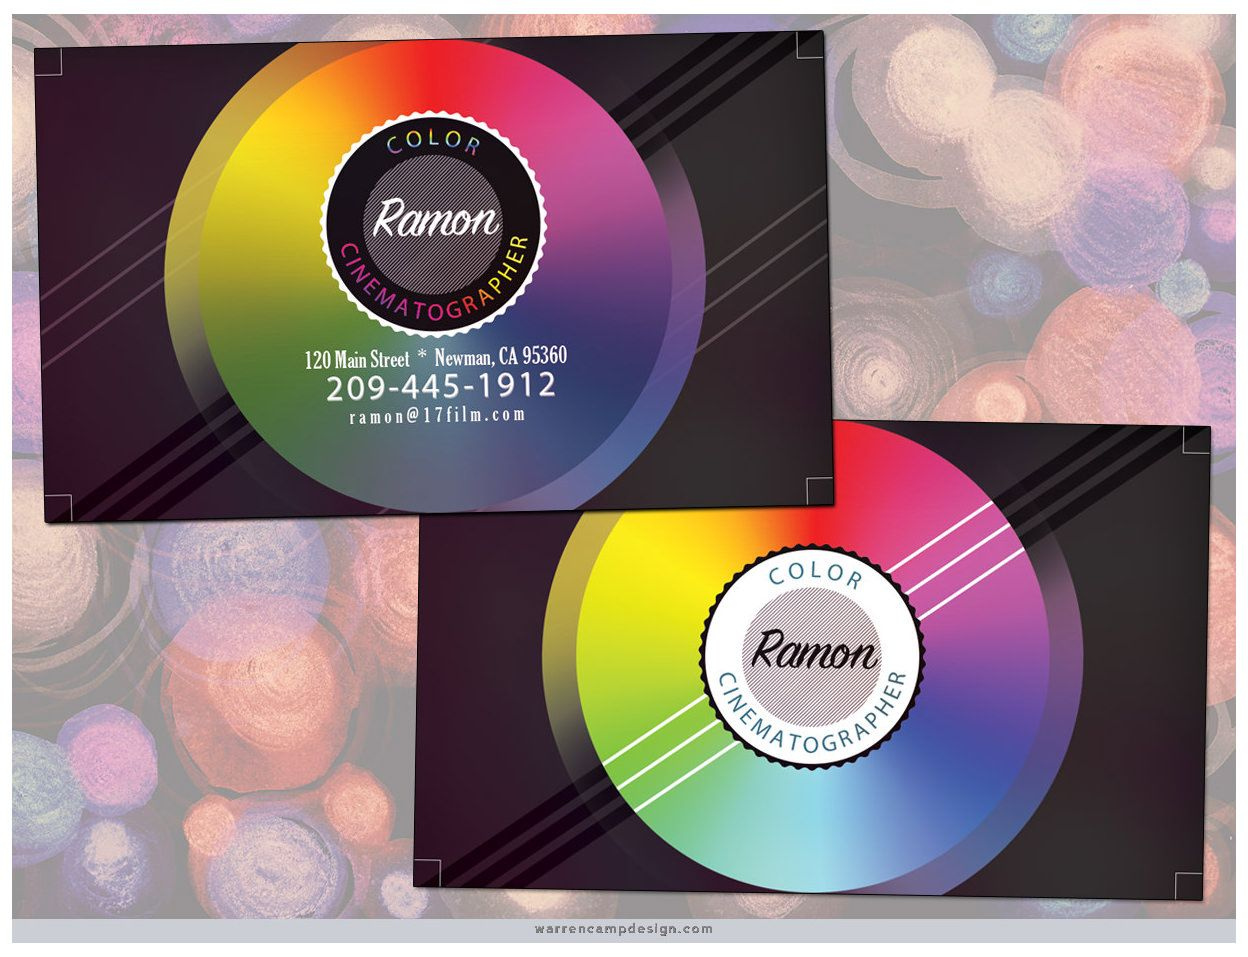 Color cinematographer on custom backgrounds warren created color cinematographer on custom backgrounds warren created multidimensional color disks cds for both sides of this custom business card reheart Images